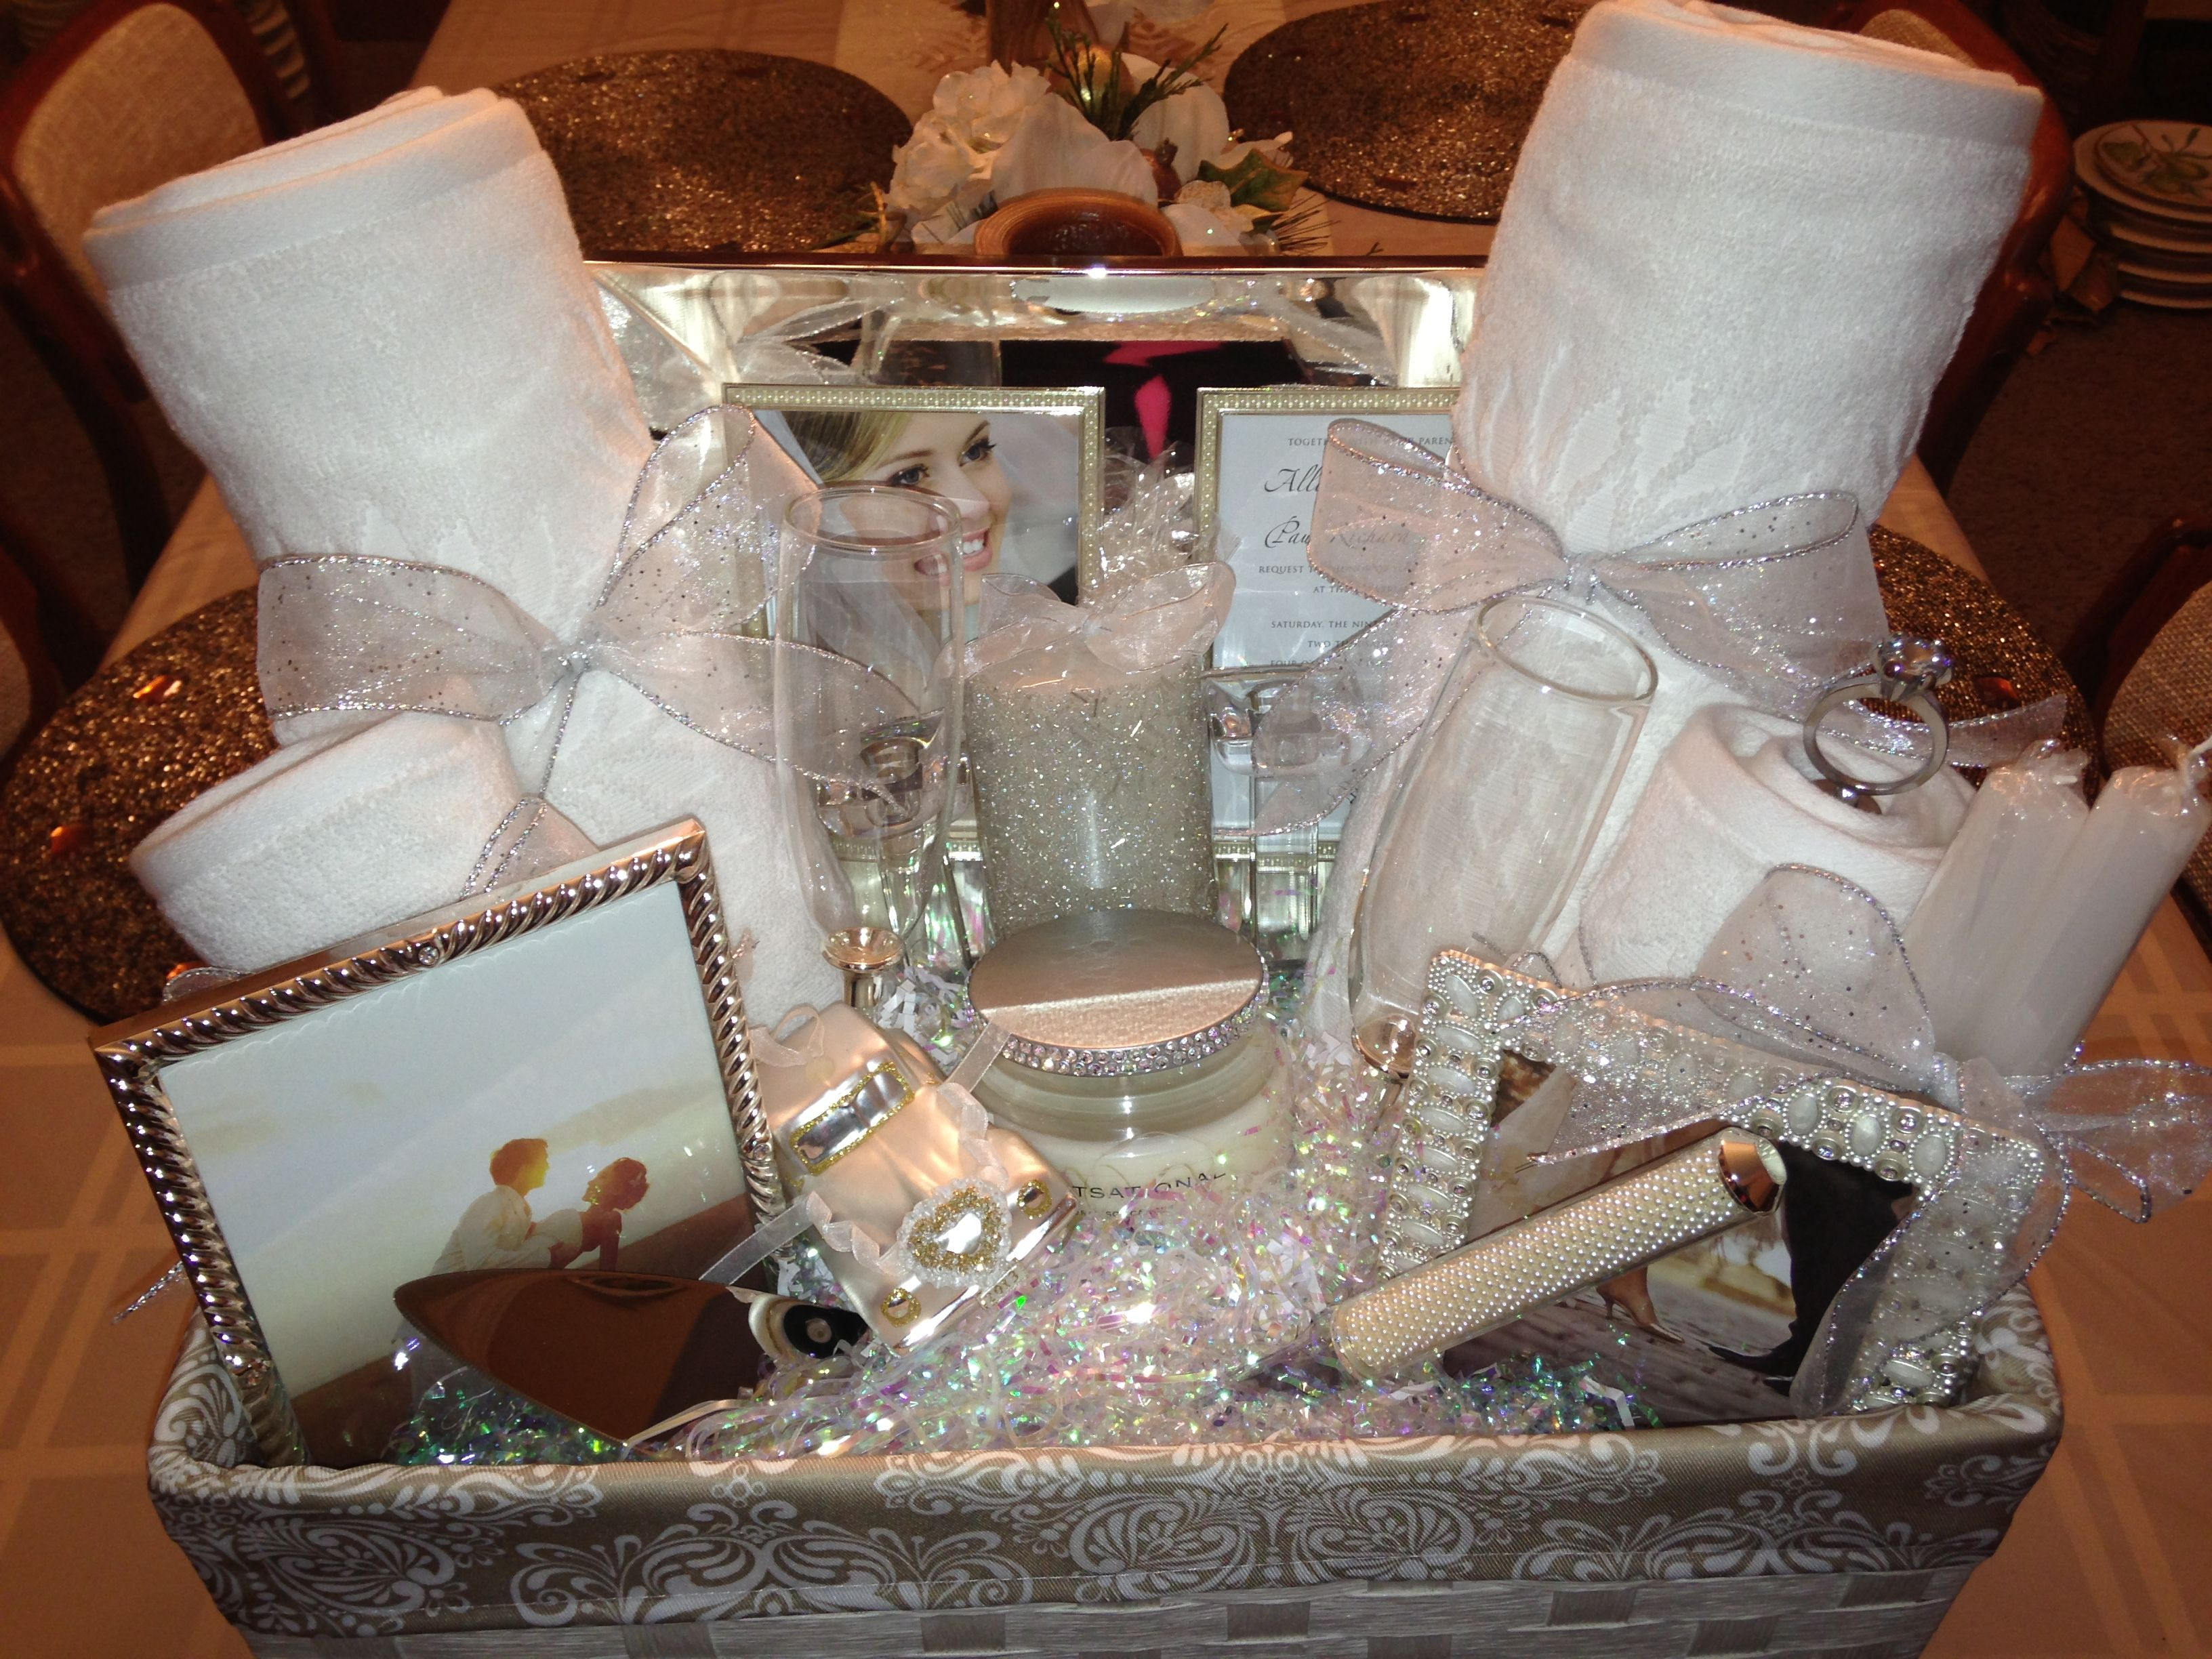 Handmade Wedding Gifts For Bride And Groom: Bridal Shower Gift Basket Ideas. Ideasthatsparkle.com On